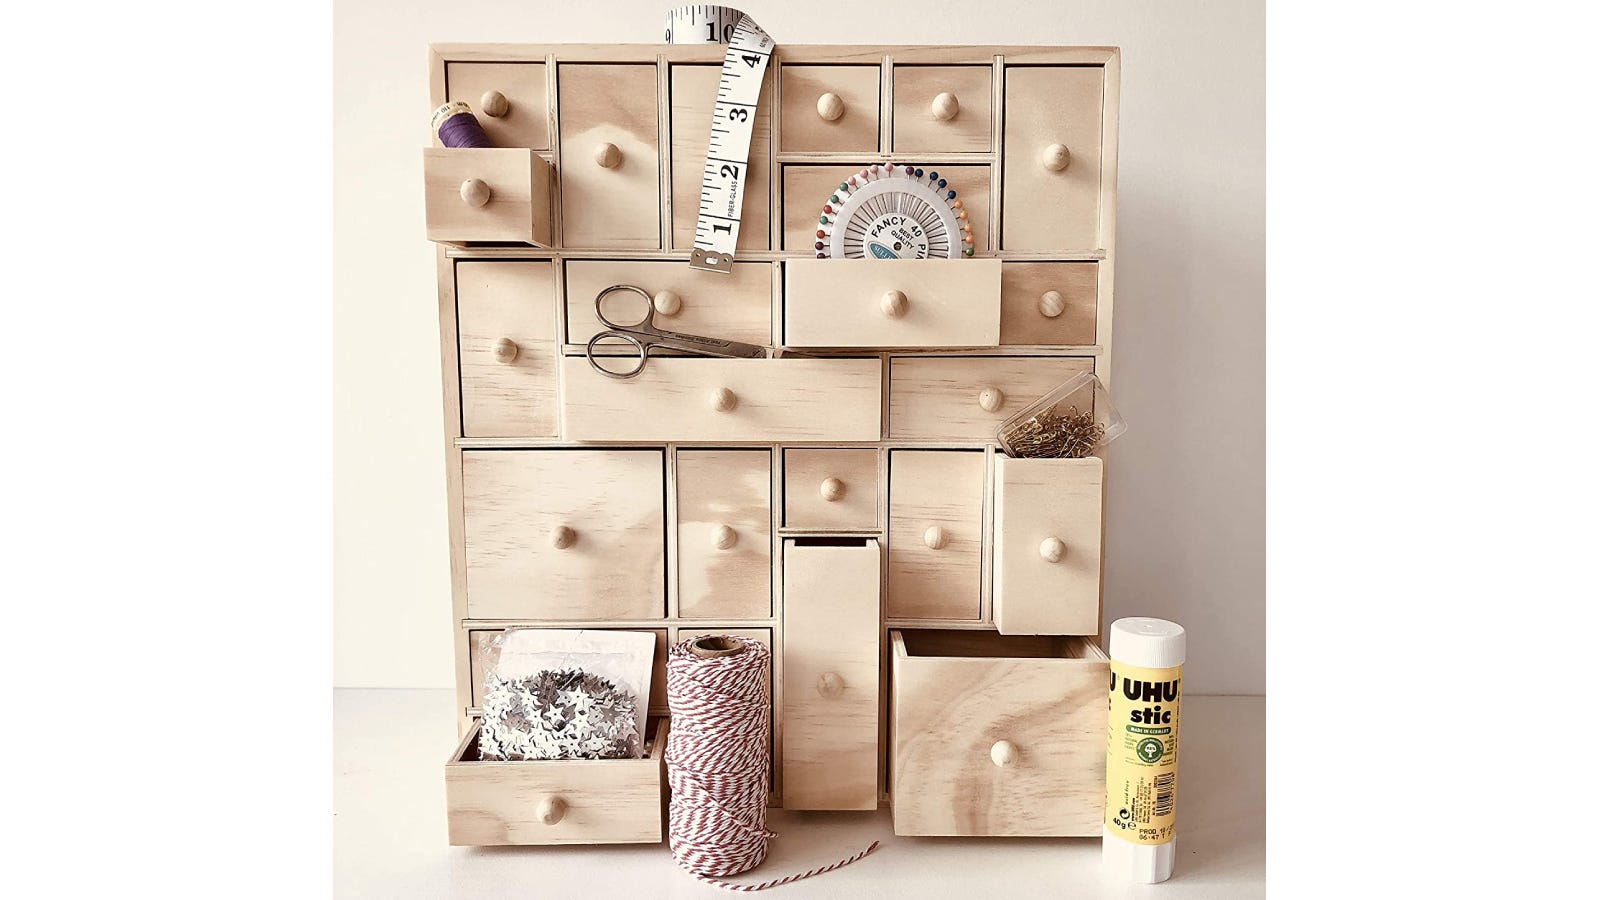 A wooden storage organizer with some open drawers containing various crafting tools.